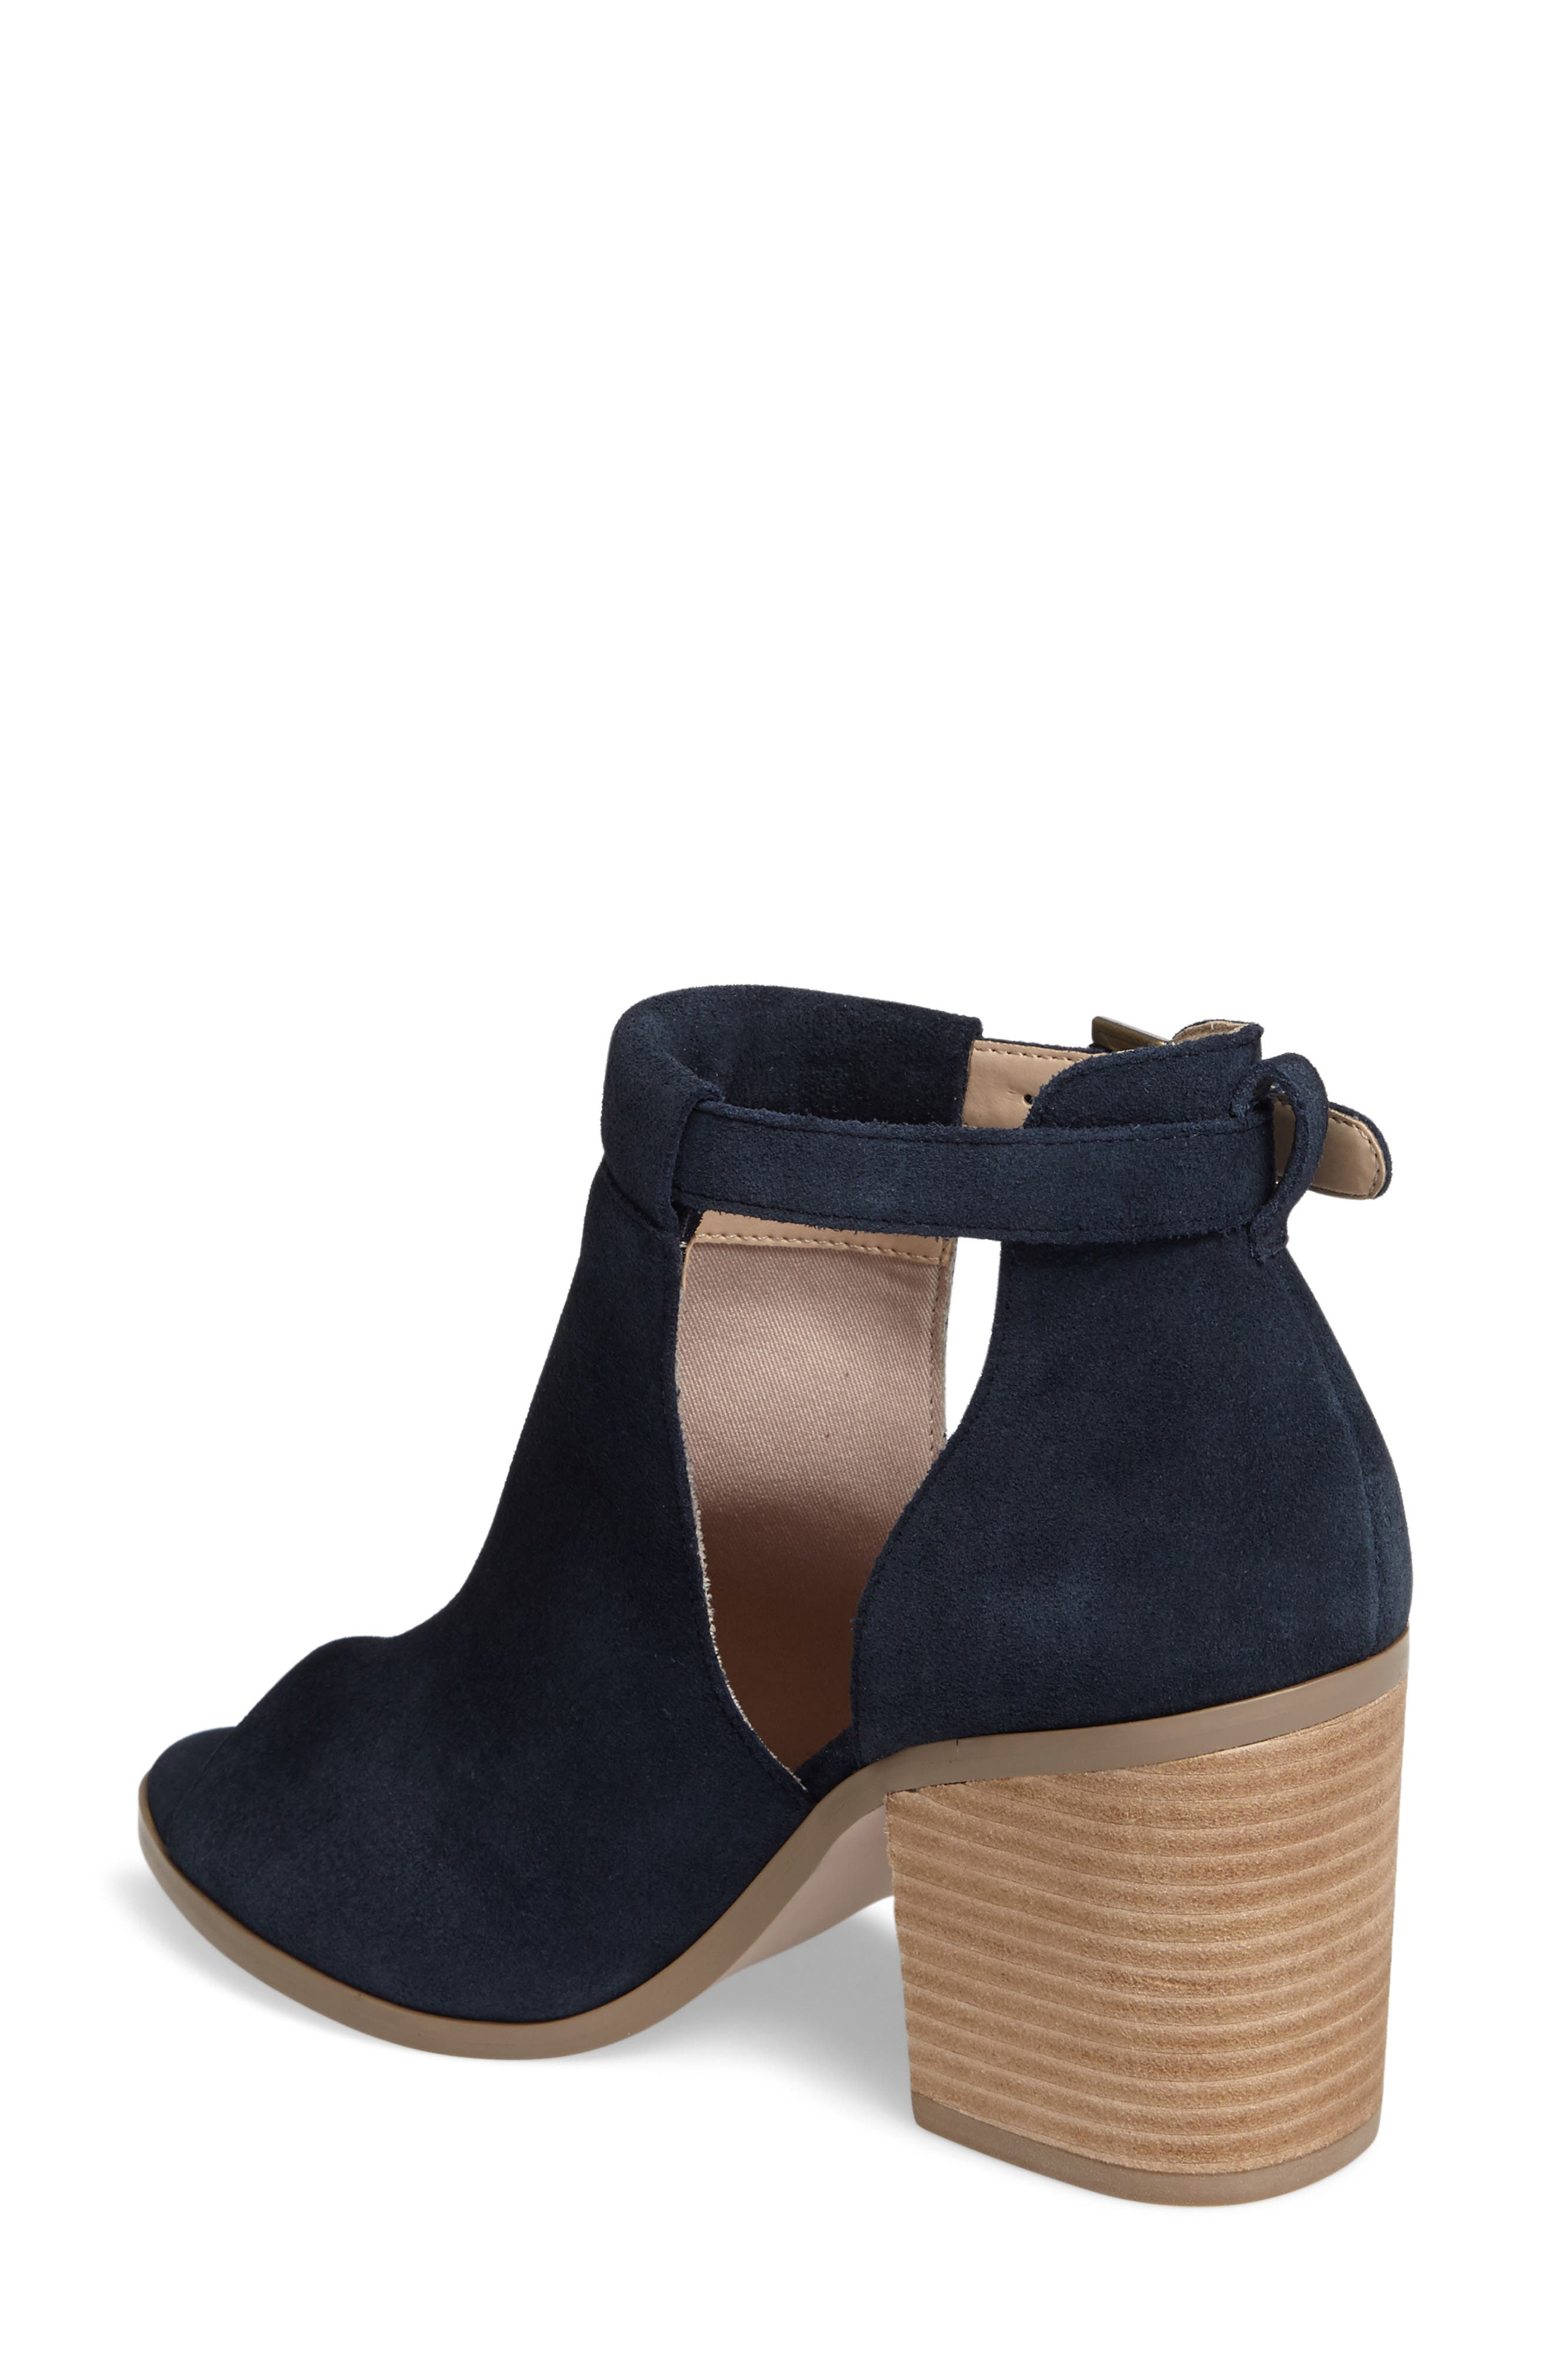 SOLE SOCIETY, 'Ferris' Open Toe Bootie, Alternate thumbnail 2, color, INK SUEDE